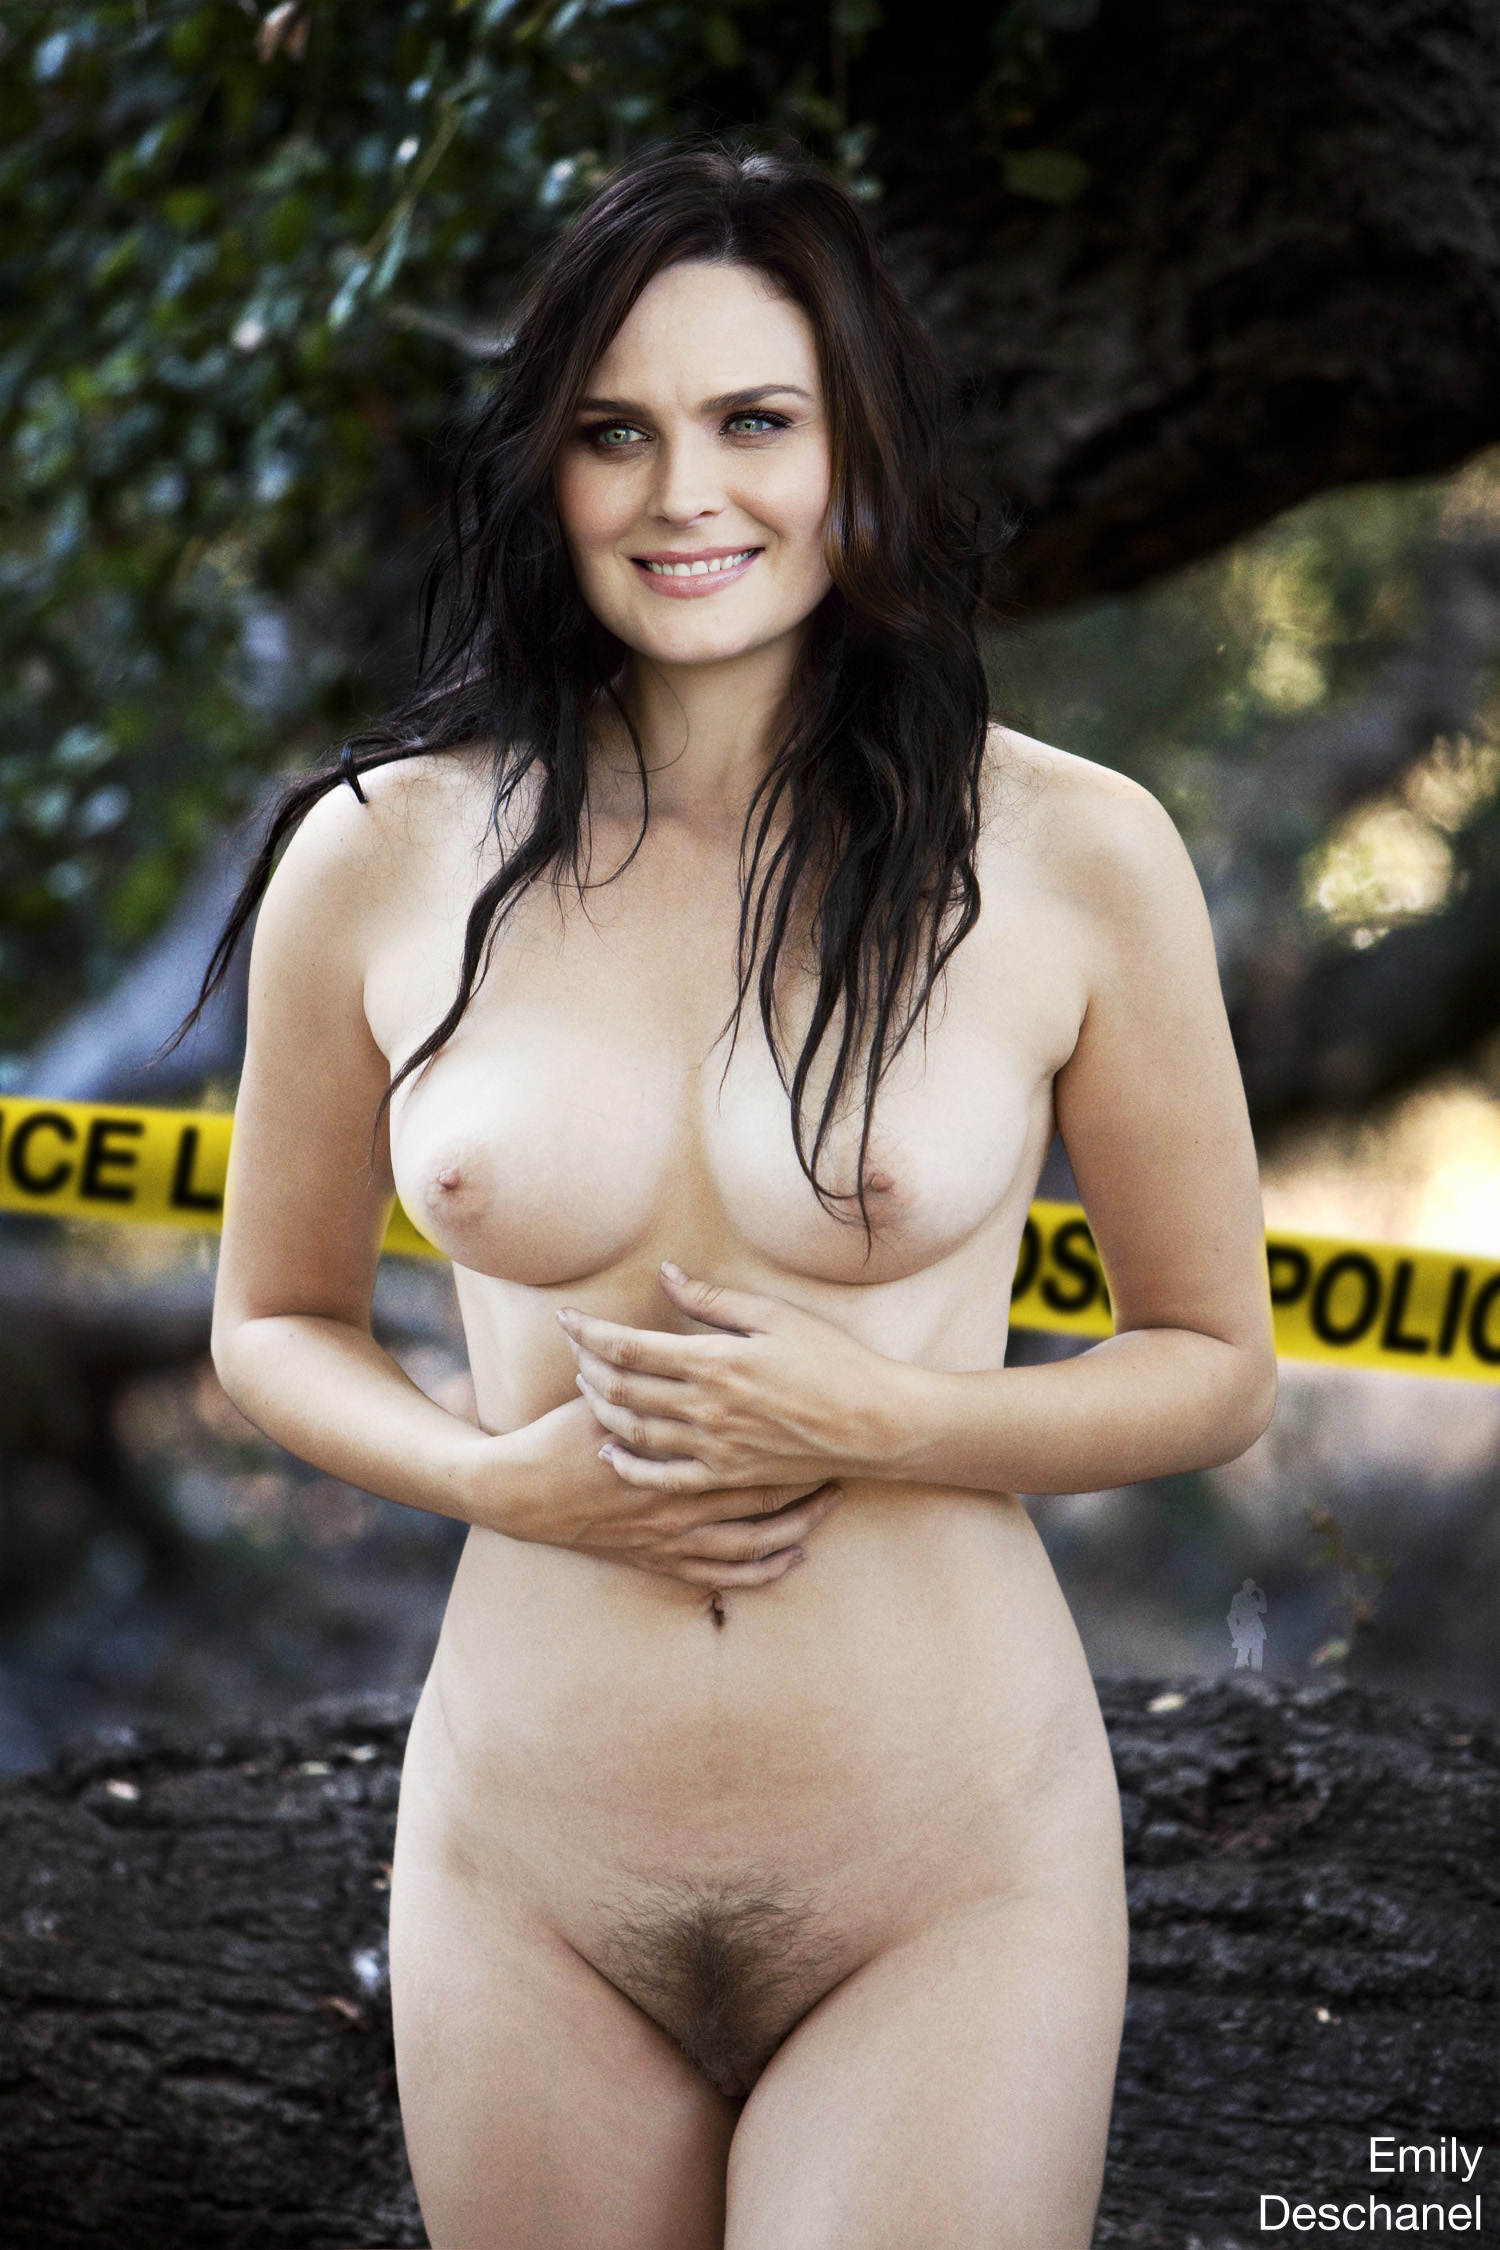 sexy-emily-deschanel-nude-hot-next-door-nude-babes